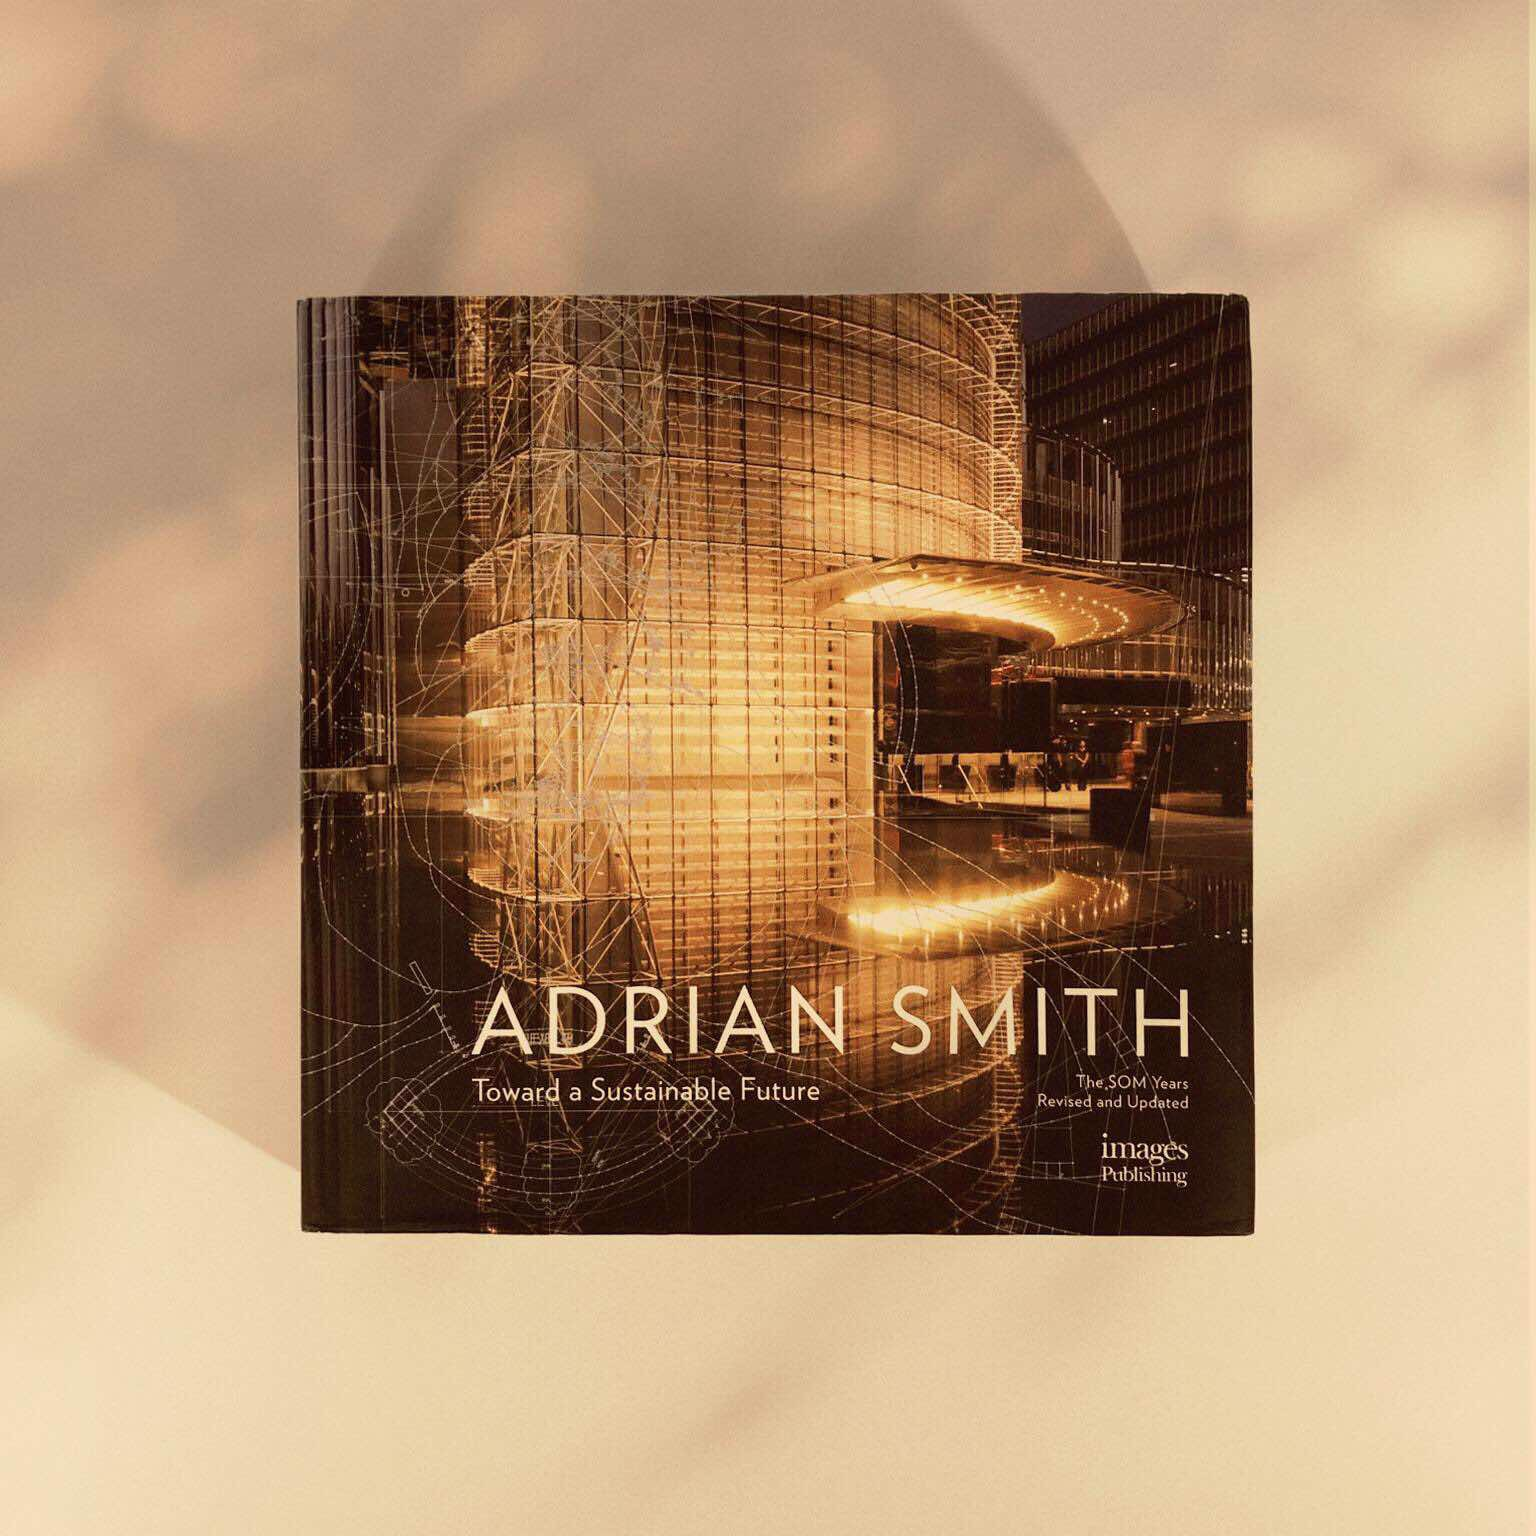 The Architecture of Adrian Smith